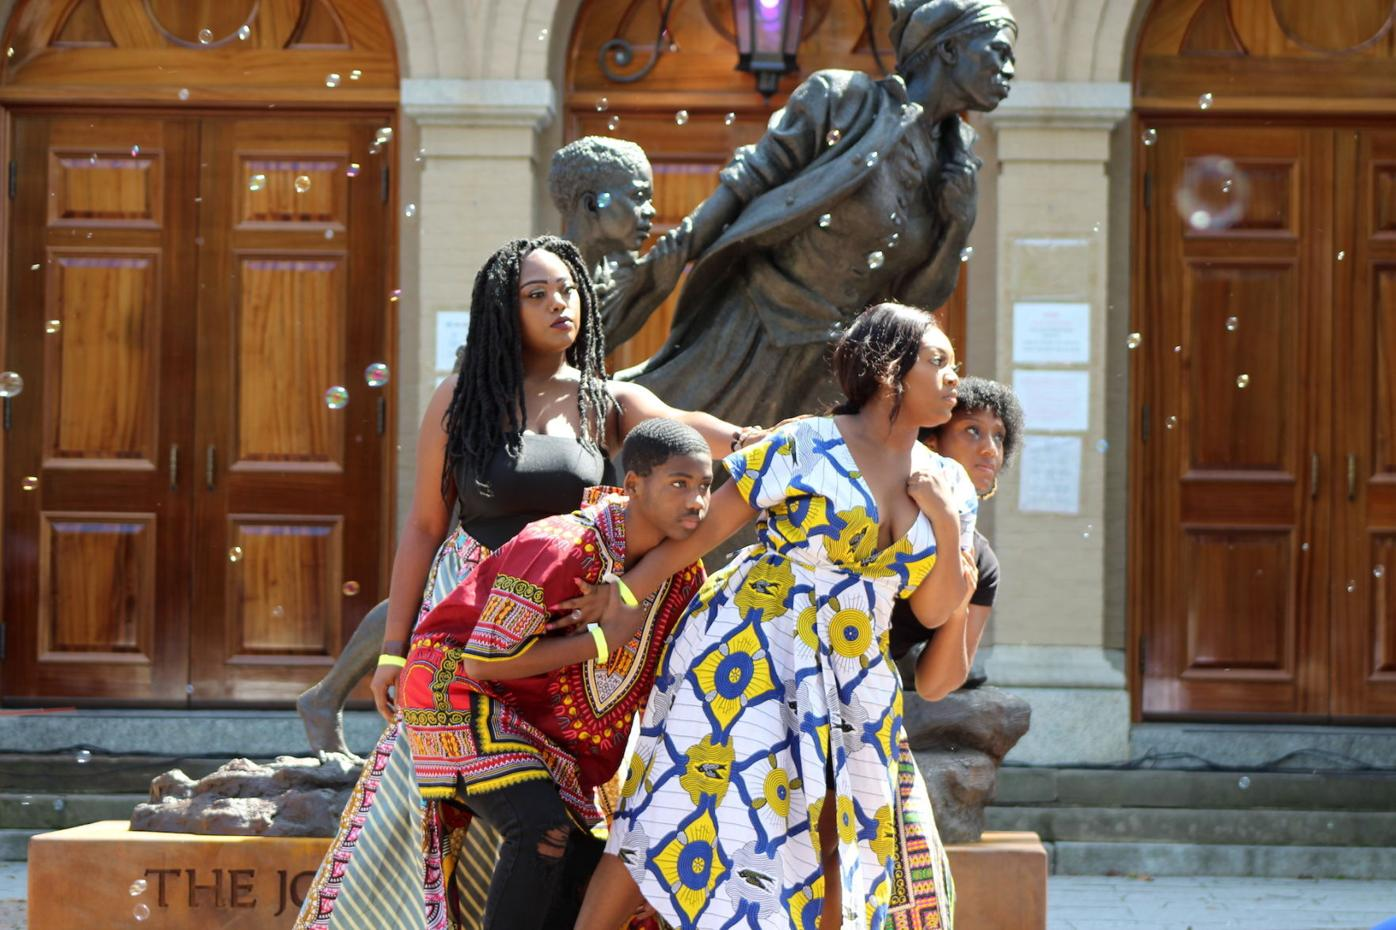 Day of Resilience Tubman statue dance pose